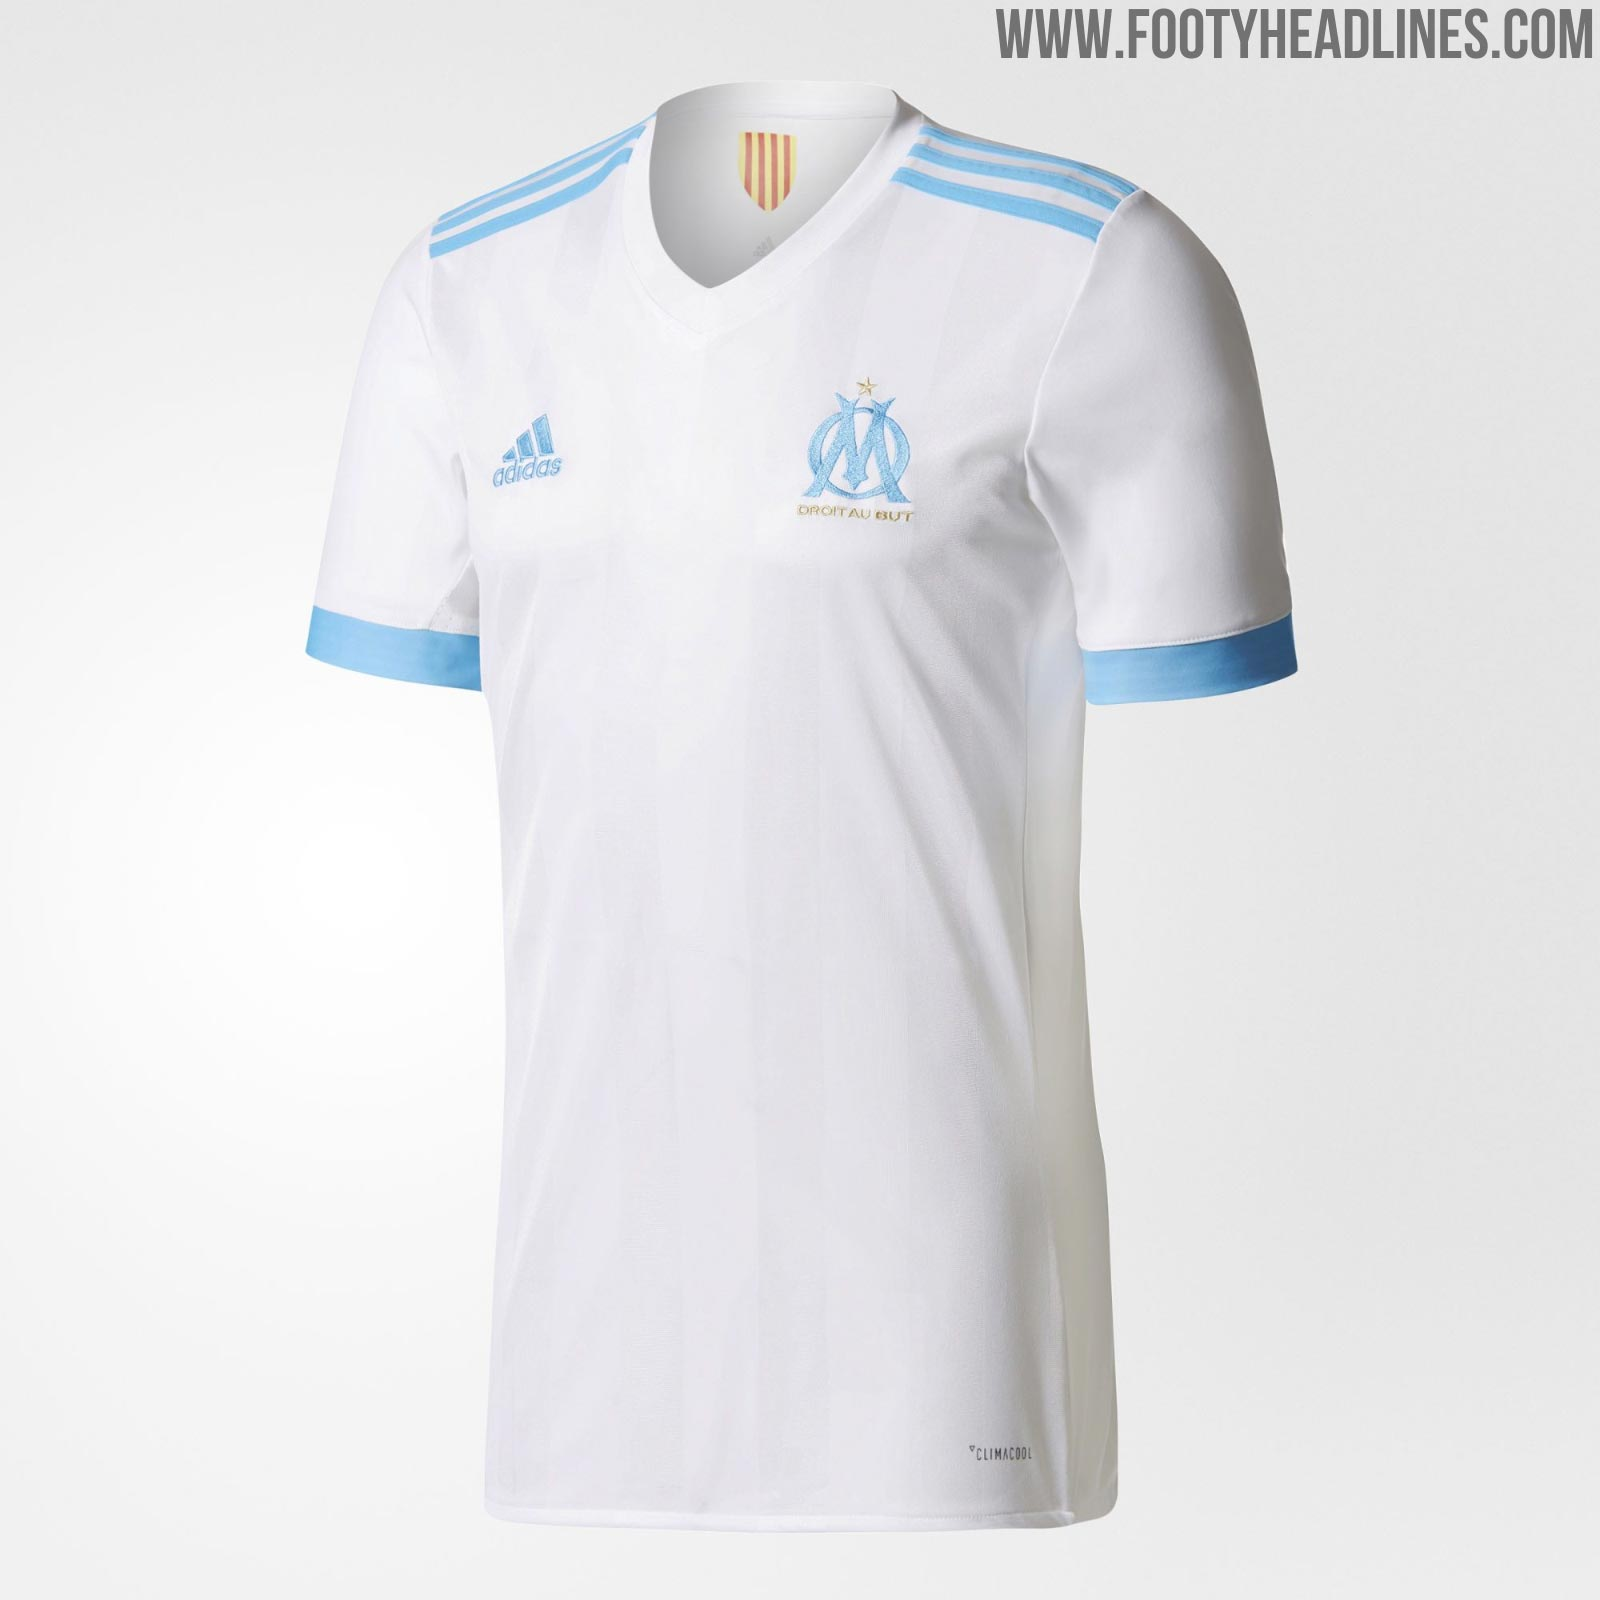 https://image.ibb.co/bOksda/Olympique_Marseille_home_kit_1.jpg